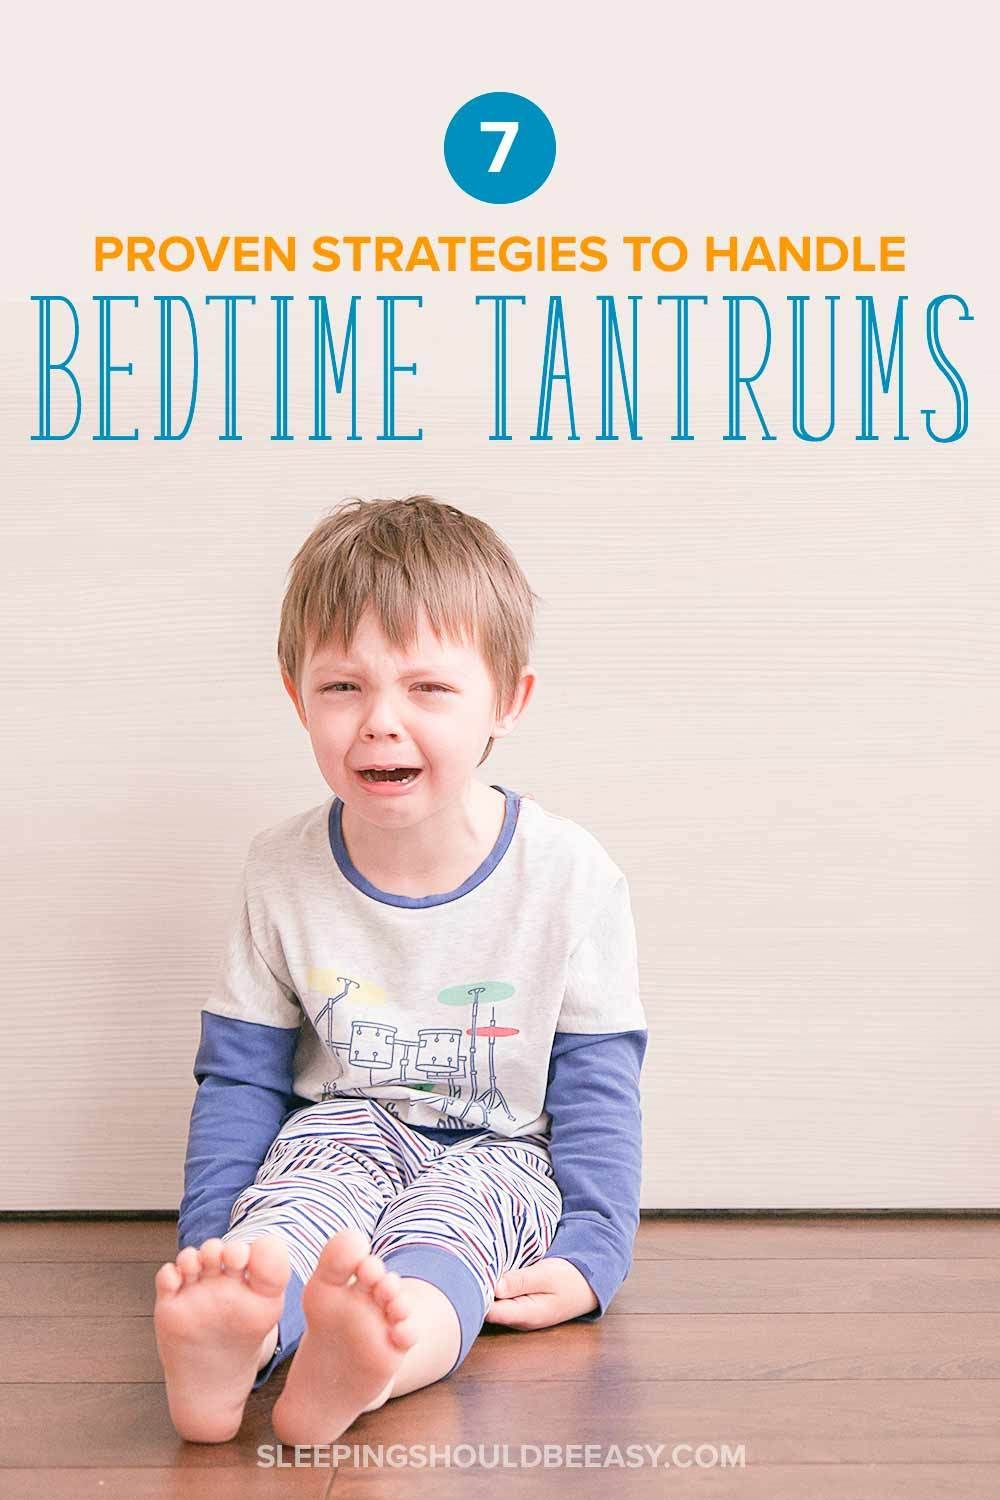 Dealing with kids and bedtime tantrums is never easy, especially when the whole family loses sleep. Discover the 7 proven tips and strategies to end toddler tantrums at bedtime once and for all, in a gentle, firm, and loving way. #toddler #sleep #toddlerlife